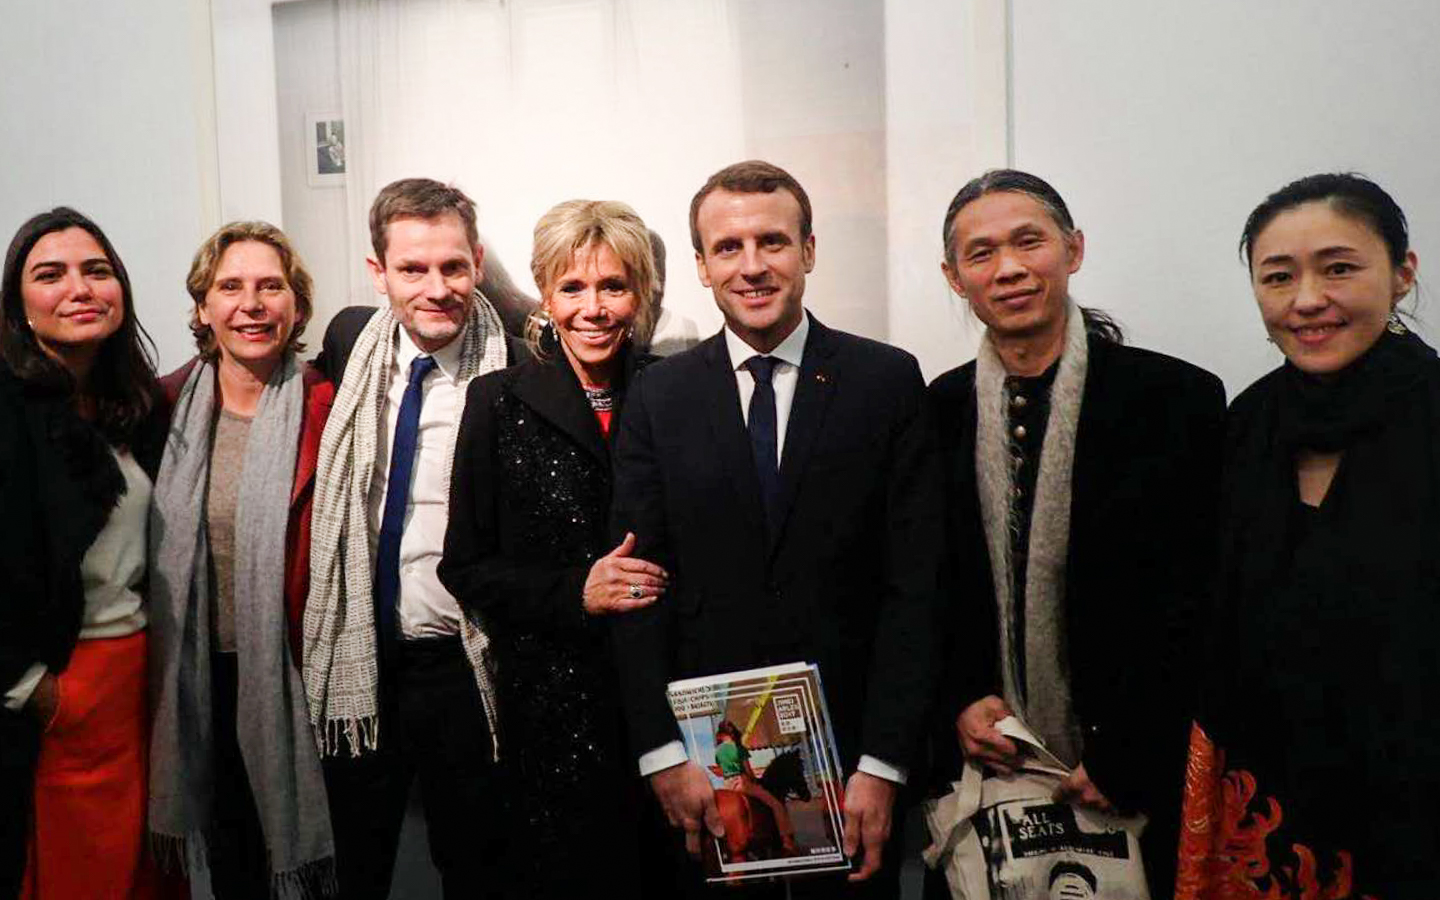 French President Emmanuel Macron and his wife Brigitte met with the Jimei x Arles festival team during his official visit to China in January 2018 © Jimei x Arles International Photo Festival, China (jimeiarles.com)